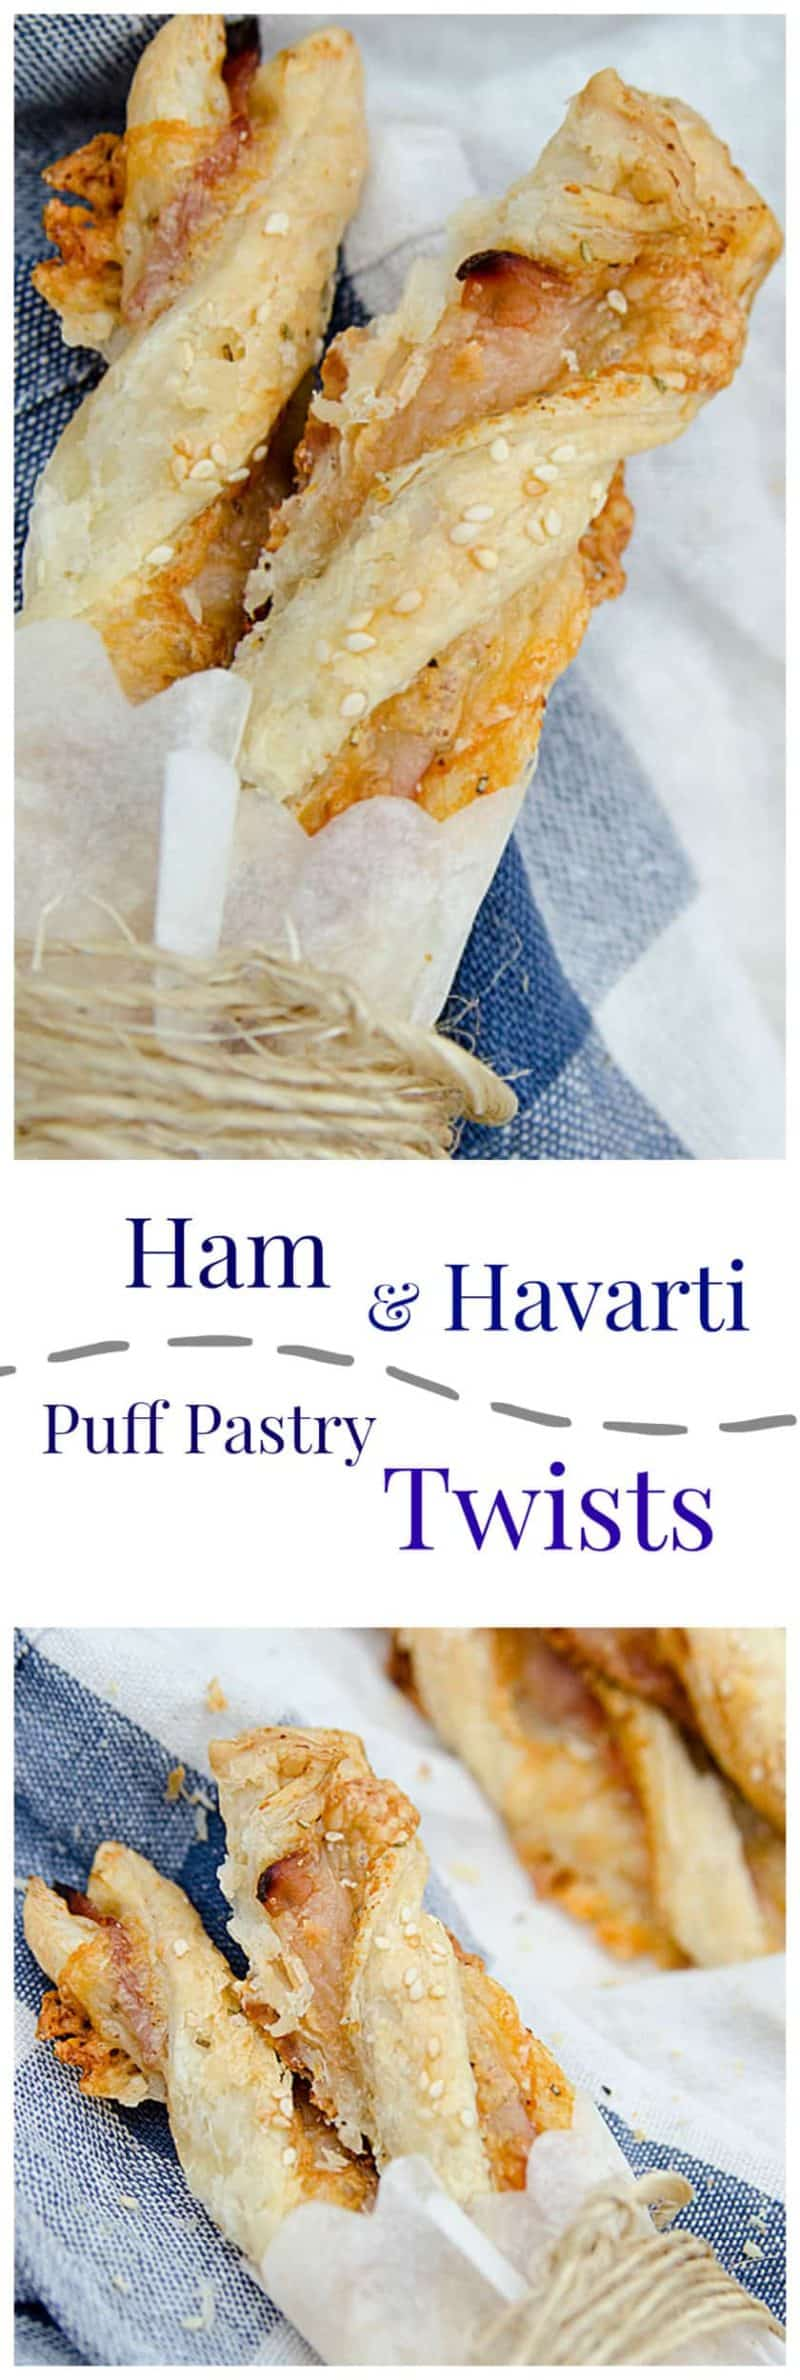 ham and havarti puff pastry twists